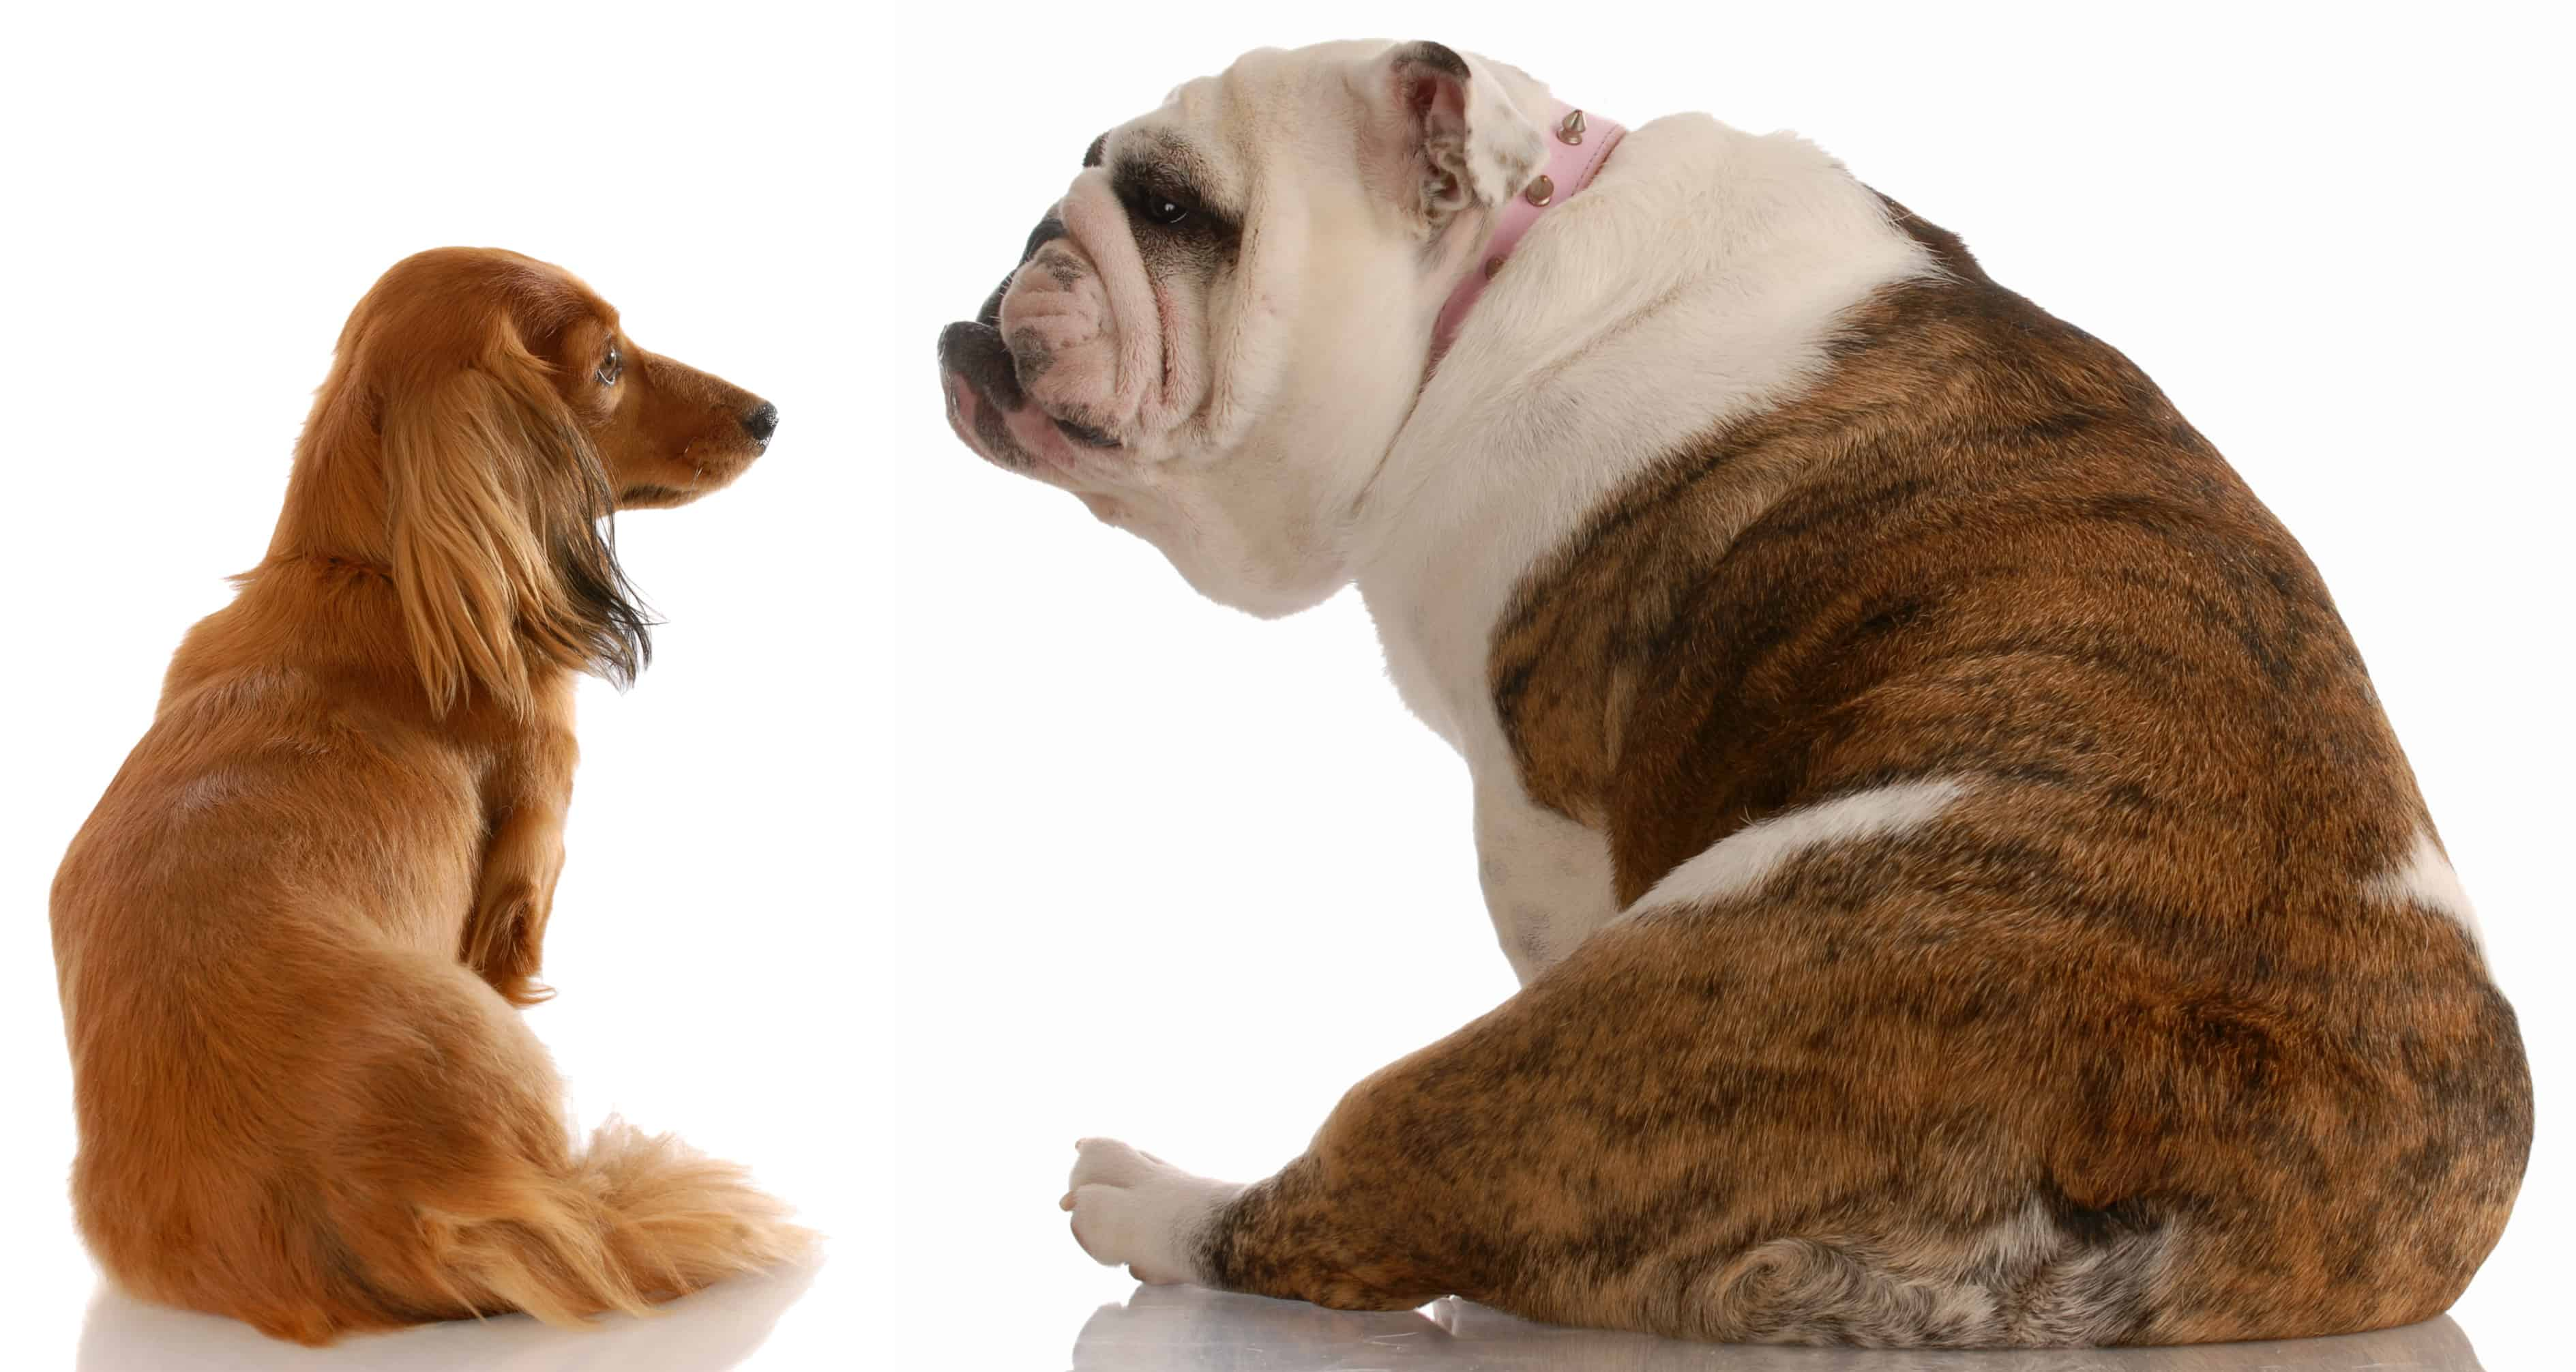 dogs in contrast – Copy